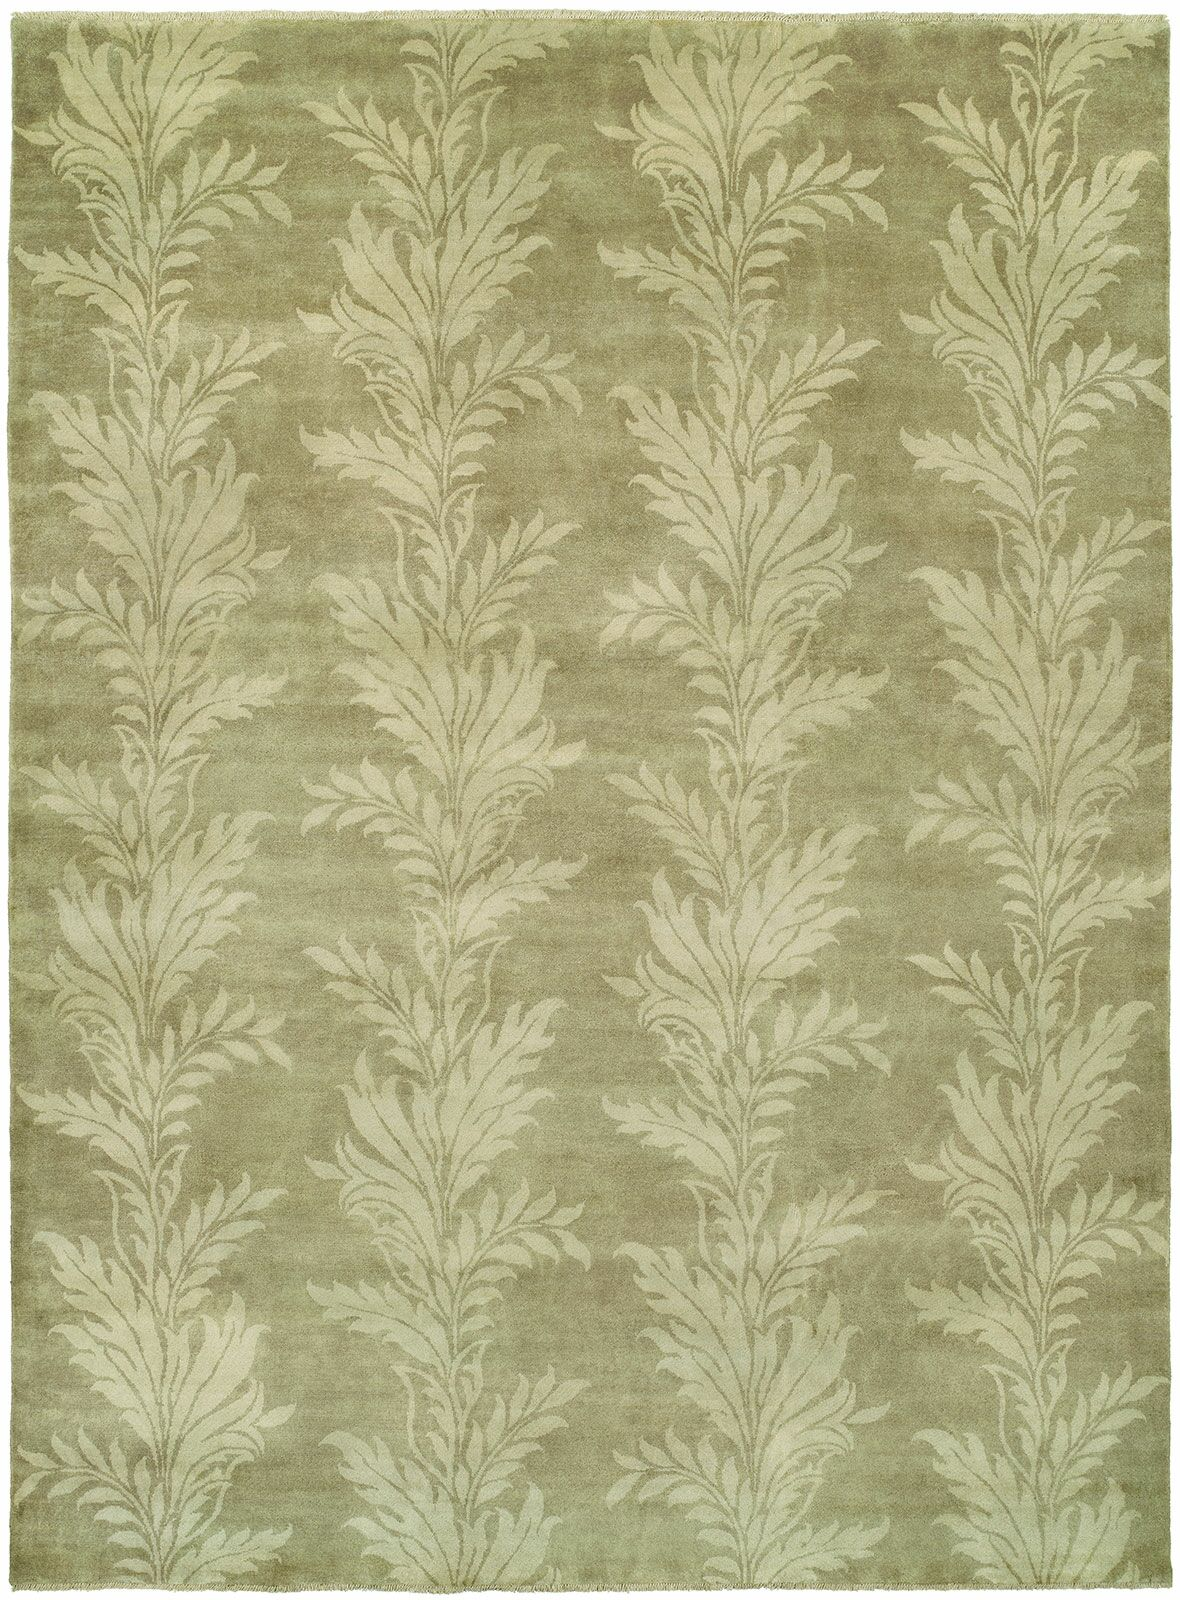 Jérémy Hand-Knotted Wool Beige Area Rug Rug Size: Rectangle 4' x 6'